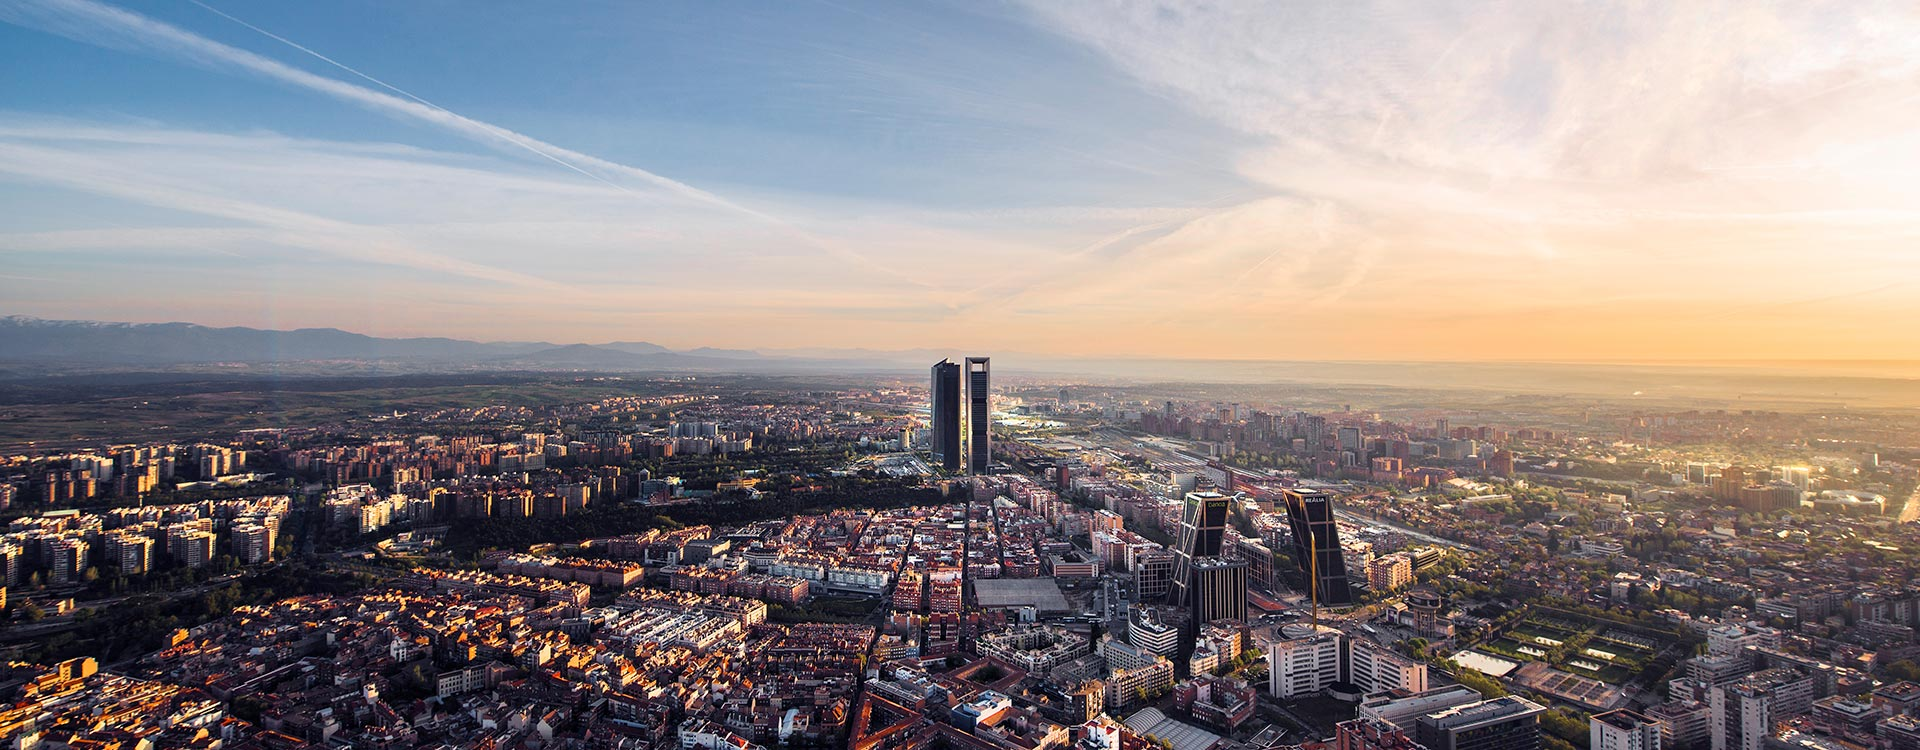 Madrid Spain city aerial